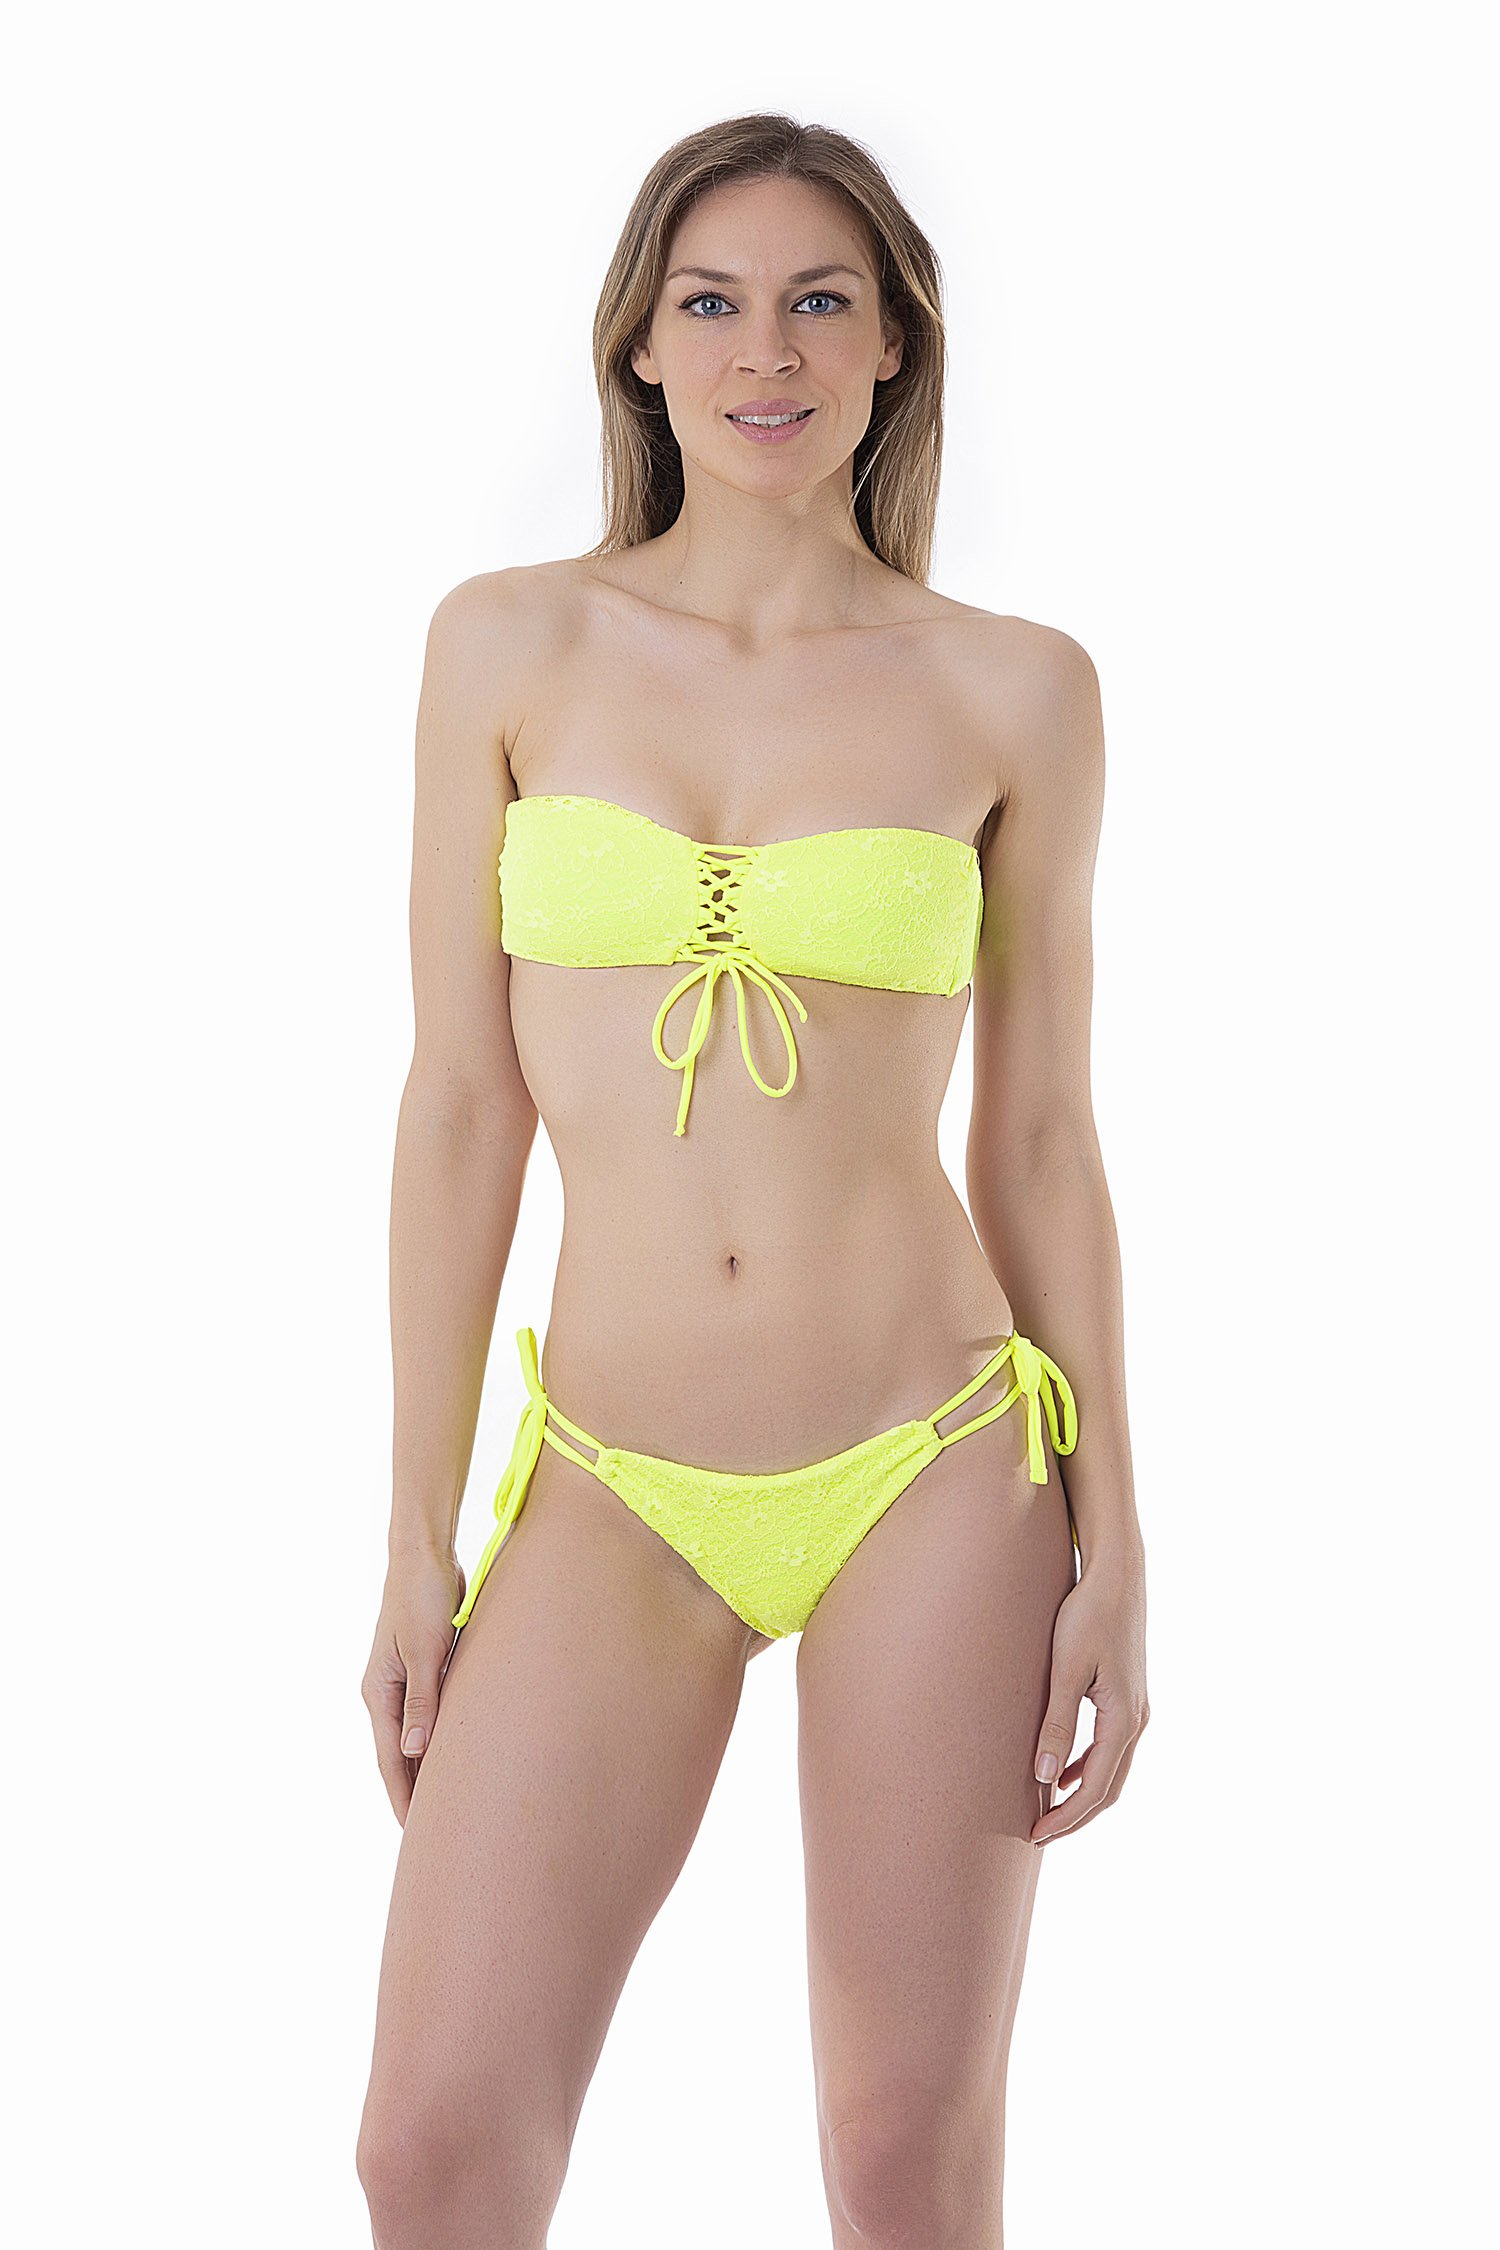 FLUORESCENT FRONT STRING BANDEAU BIKINI WITH LACE APPLICATIONS - Pizzo Giallo Fluo